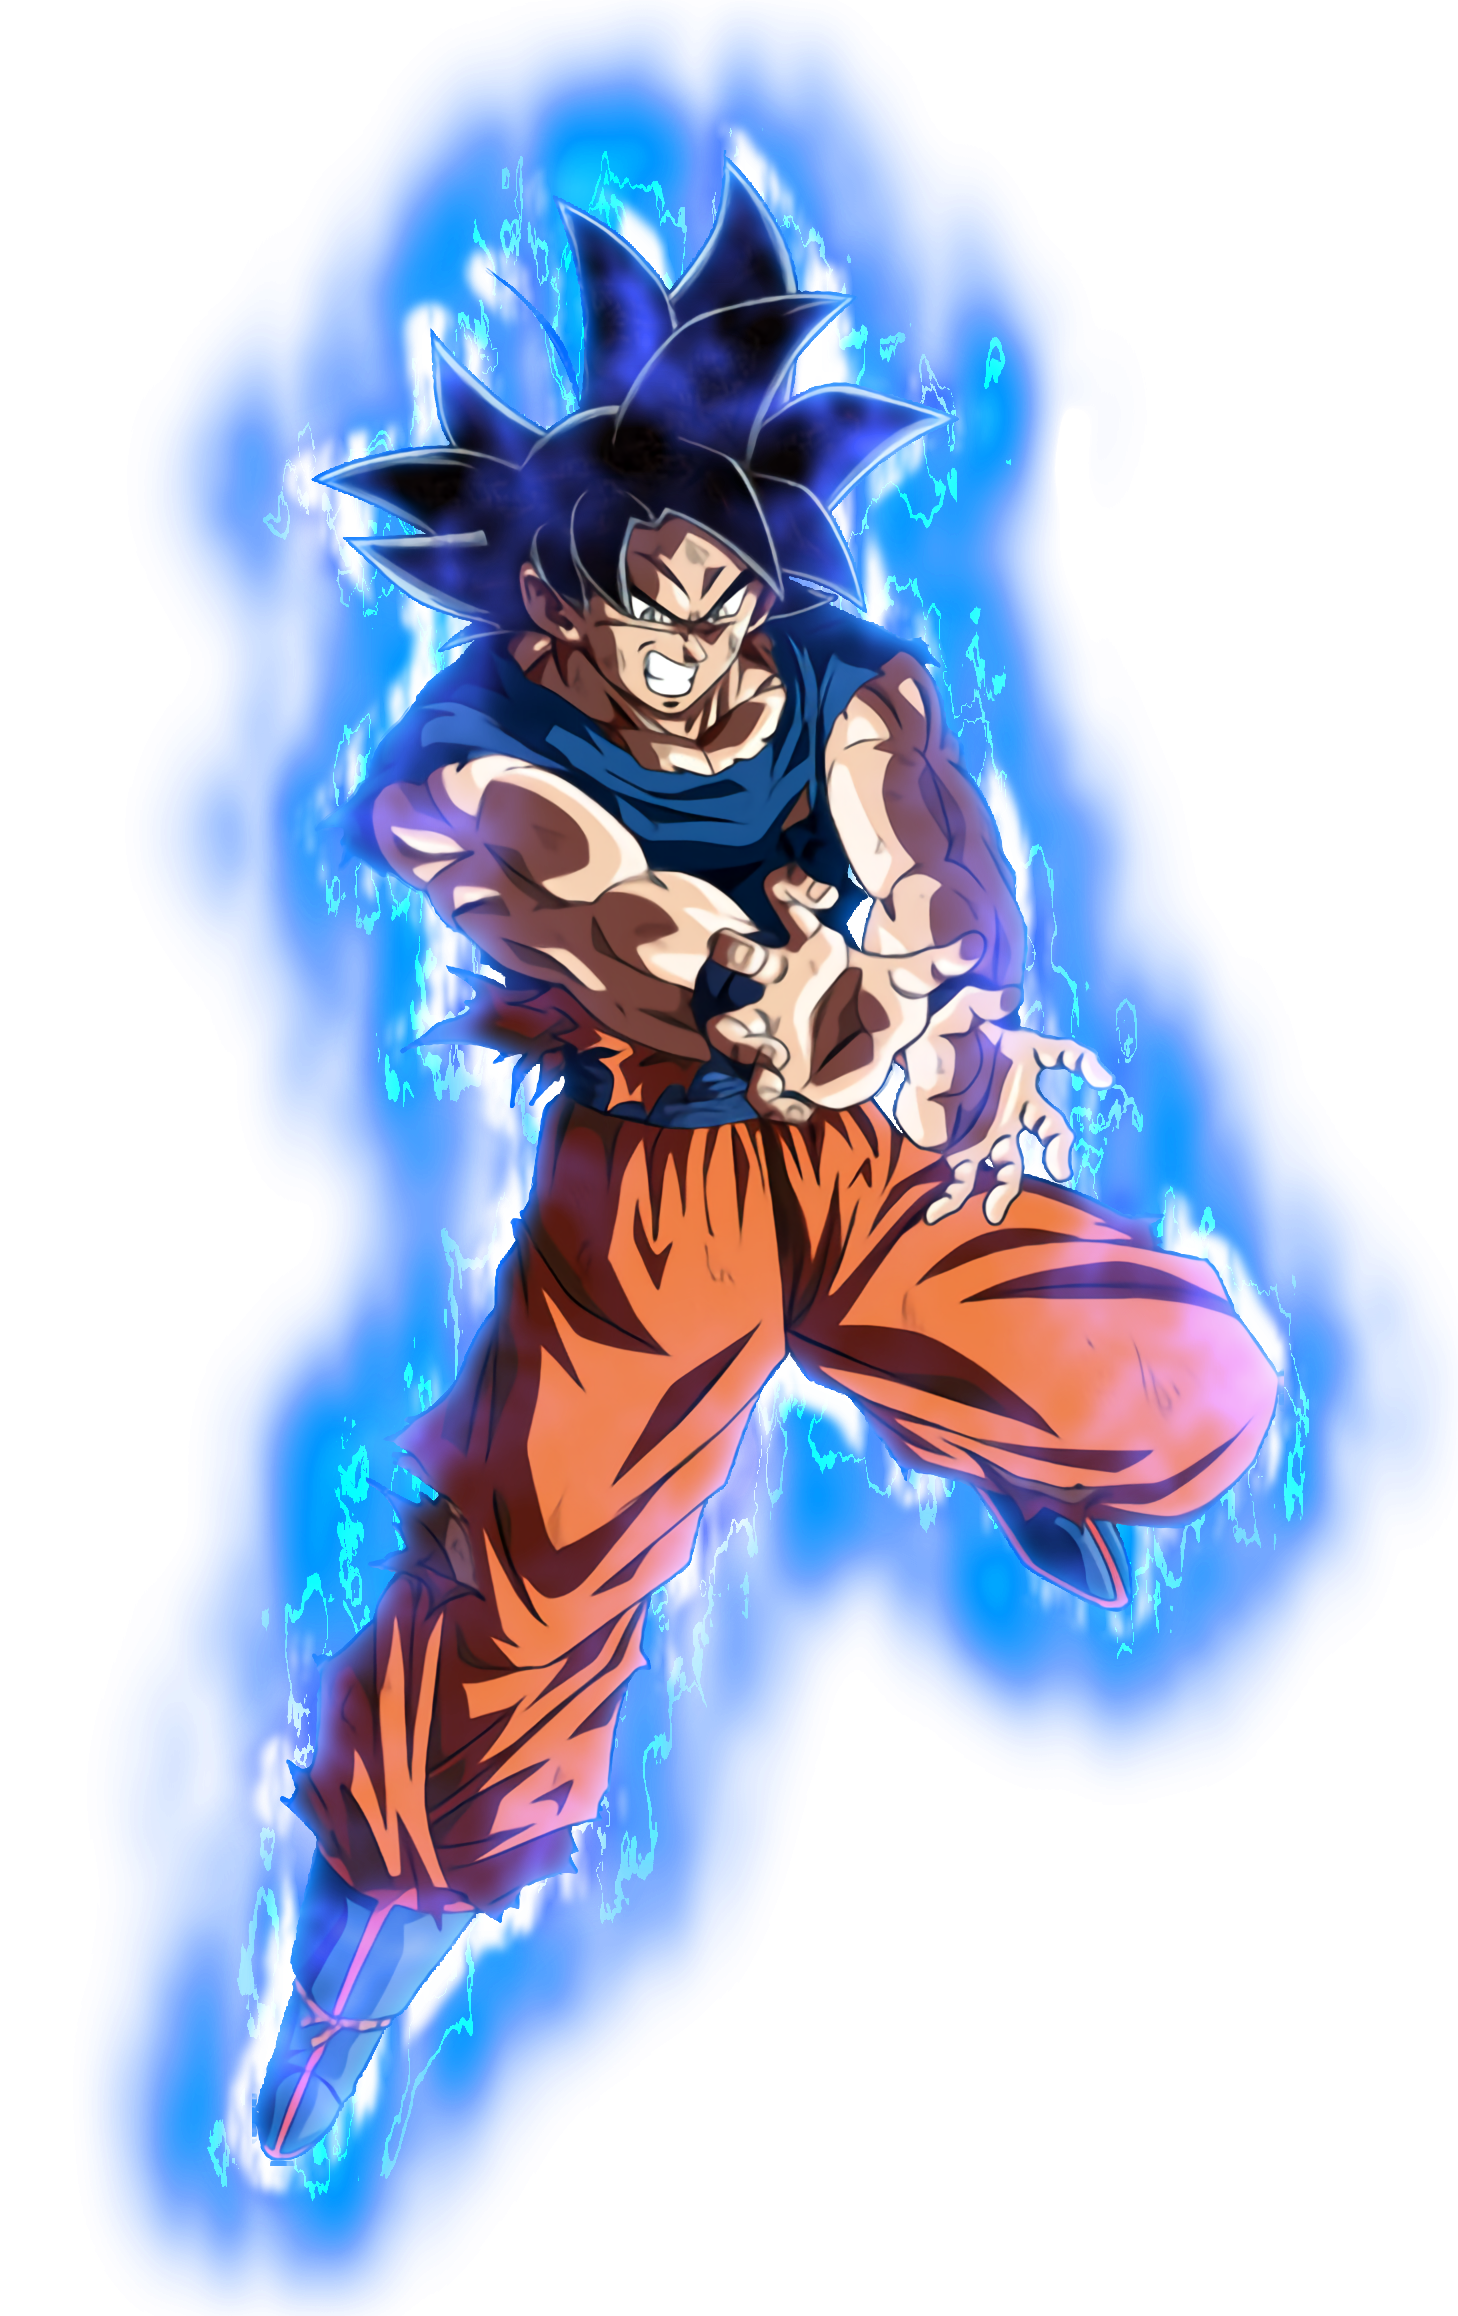 ui omen goku 3 by blackflim on deviantart ui omen goku 3 by blackflim on